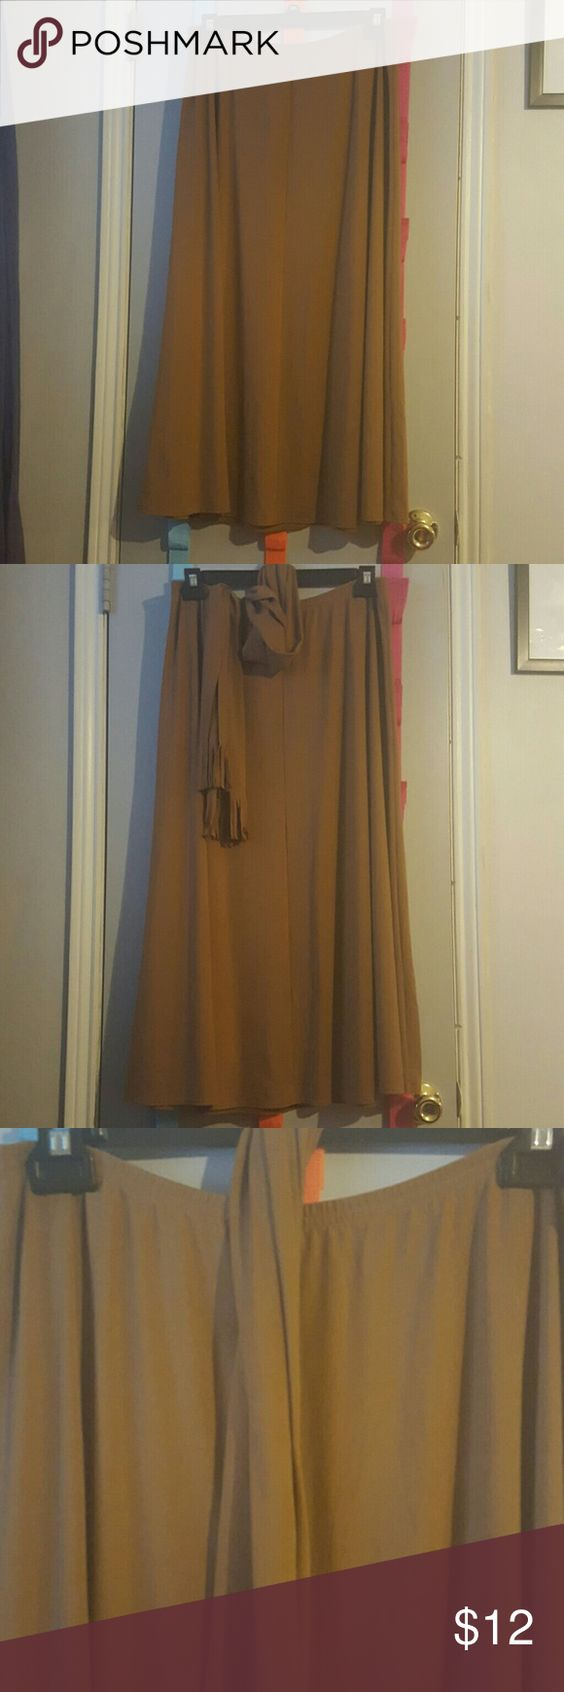 Khaki maxi skirt with sash belt Very cute never wore throw on some cowgirl boots and hat for fall or winter about 34 inches long with cute sash belt. Weekenders.com Skirts Maxi